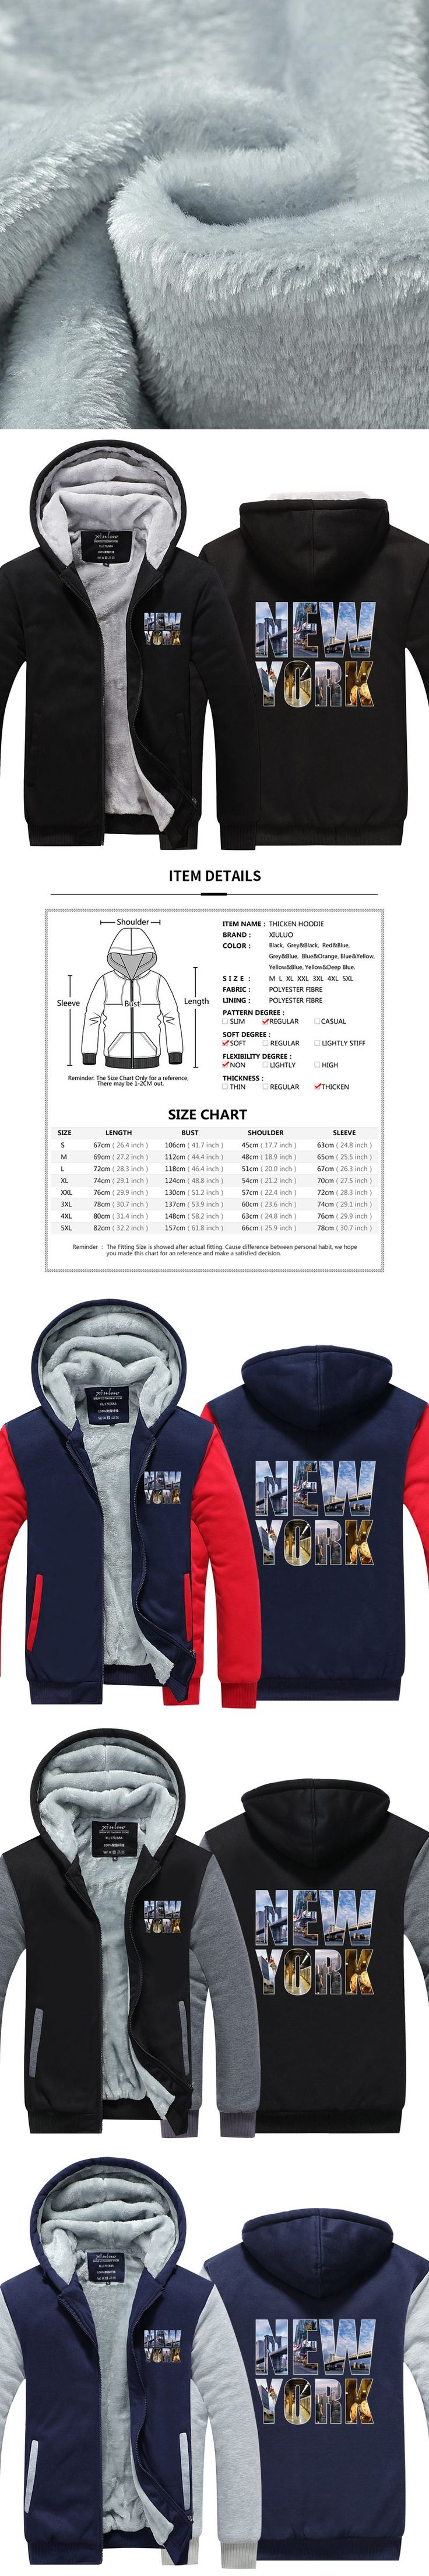 New brand High Quality New York Printed Hoodies 3d casual Hoody Thicken Fleece Zip up Men Winter Tops USA EU size Plus size